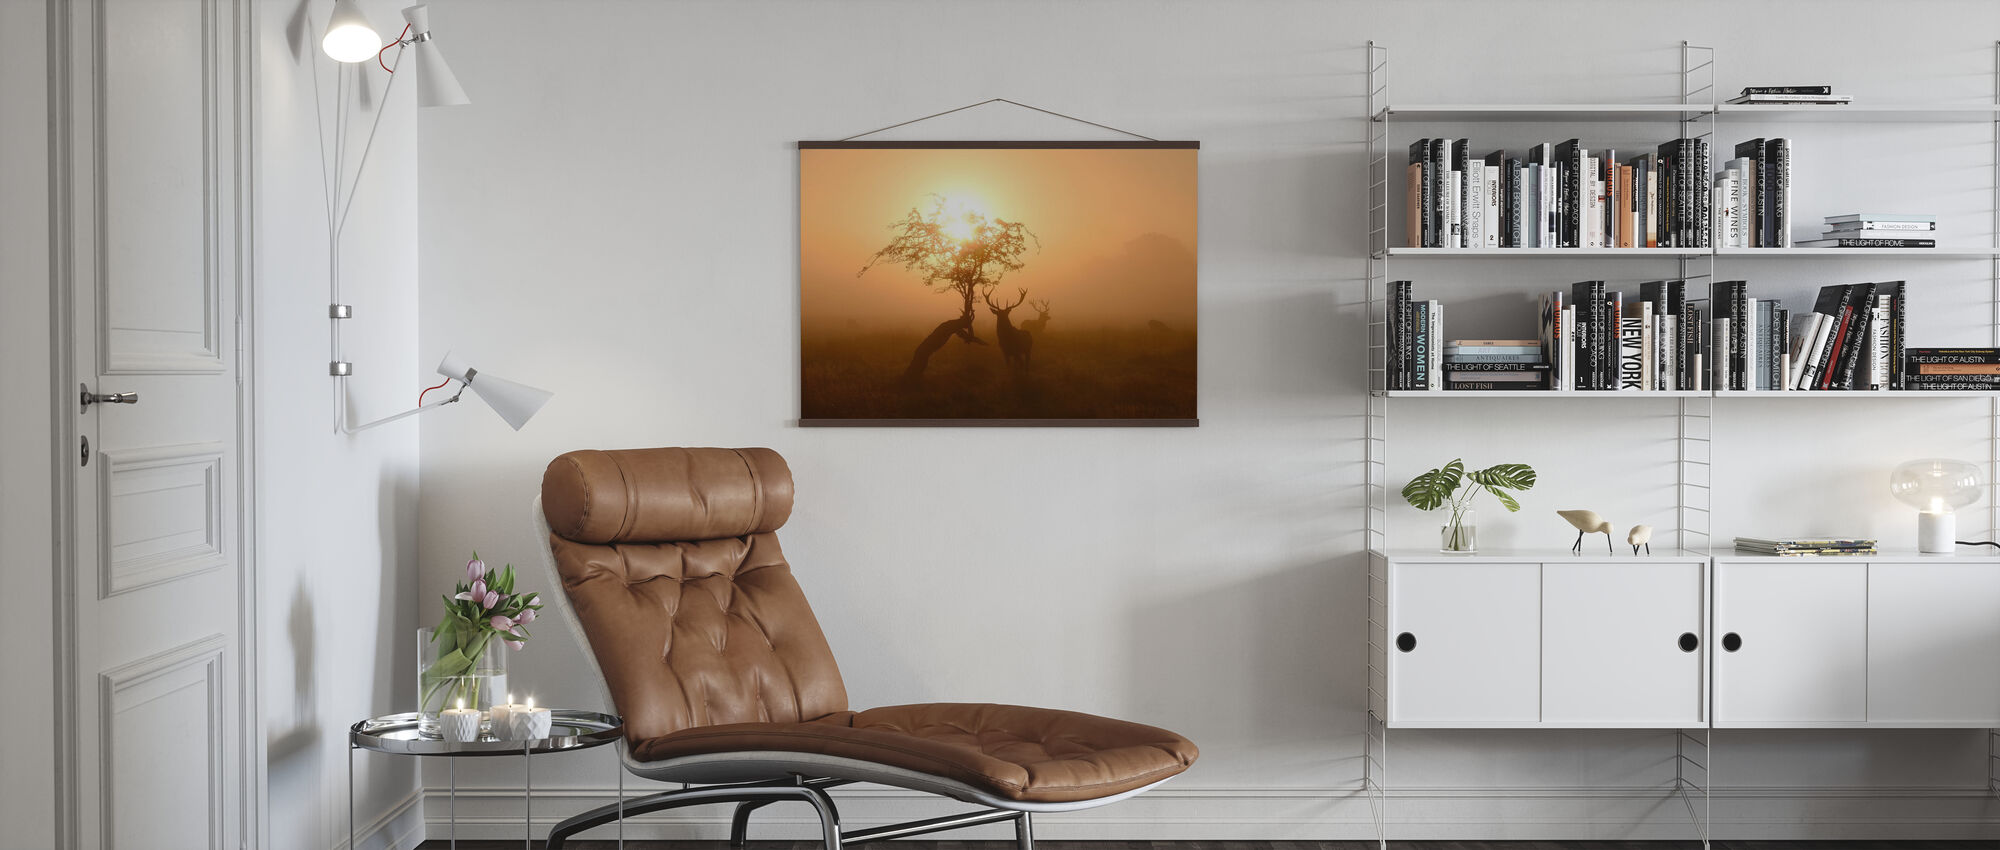 Sun and Deers - Poster - Living Room